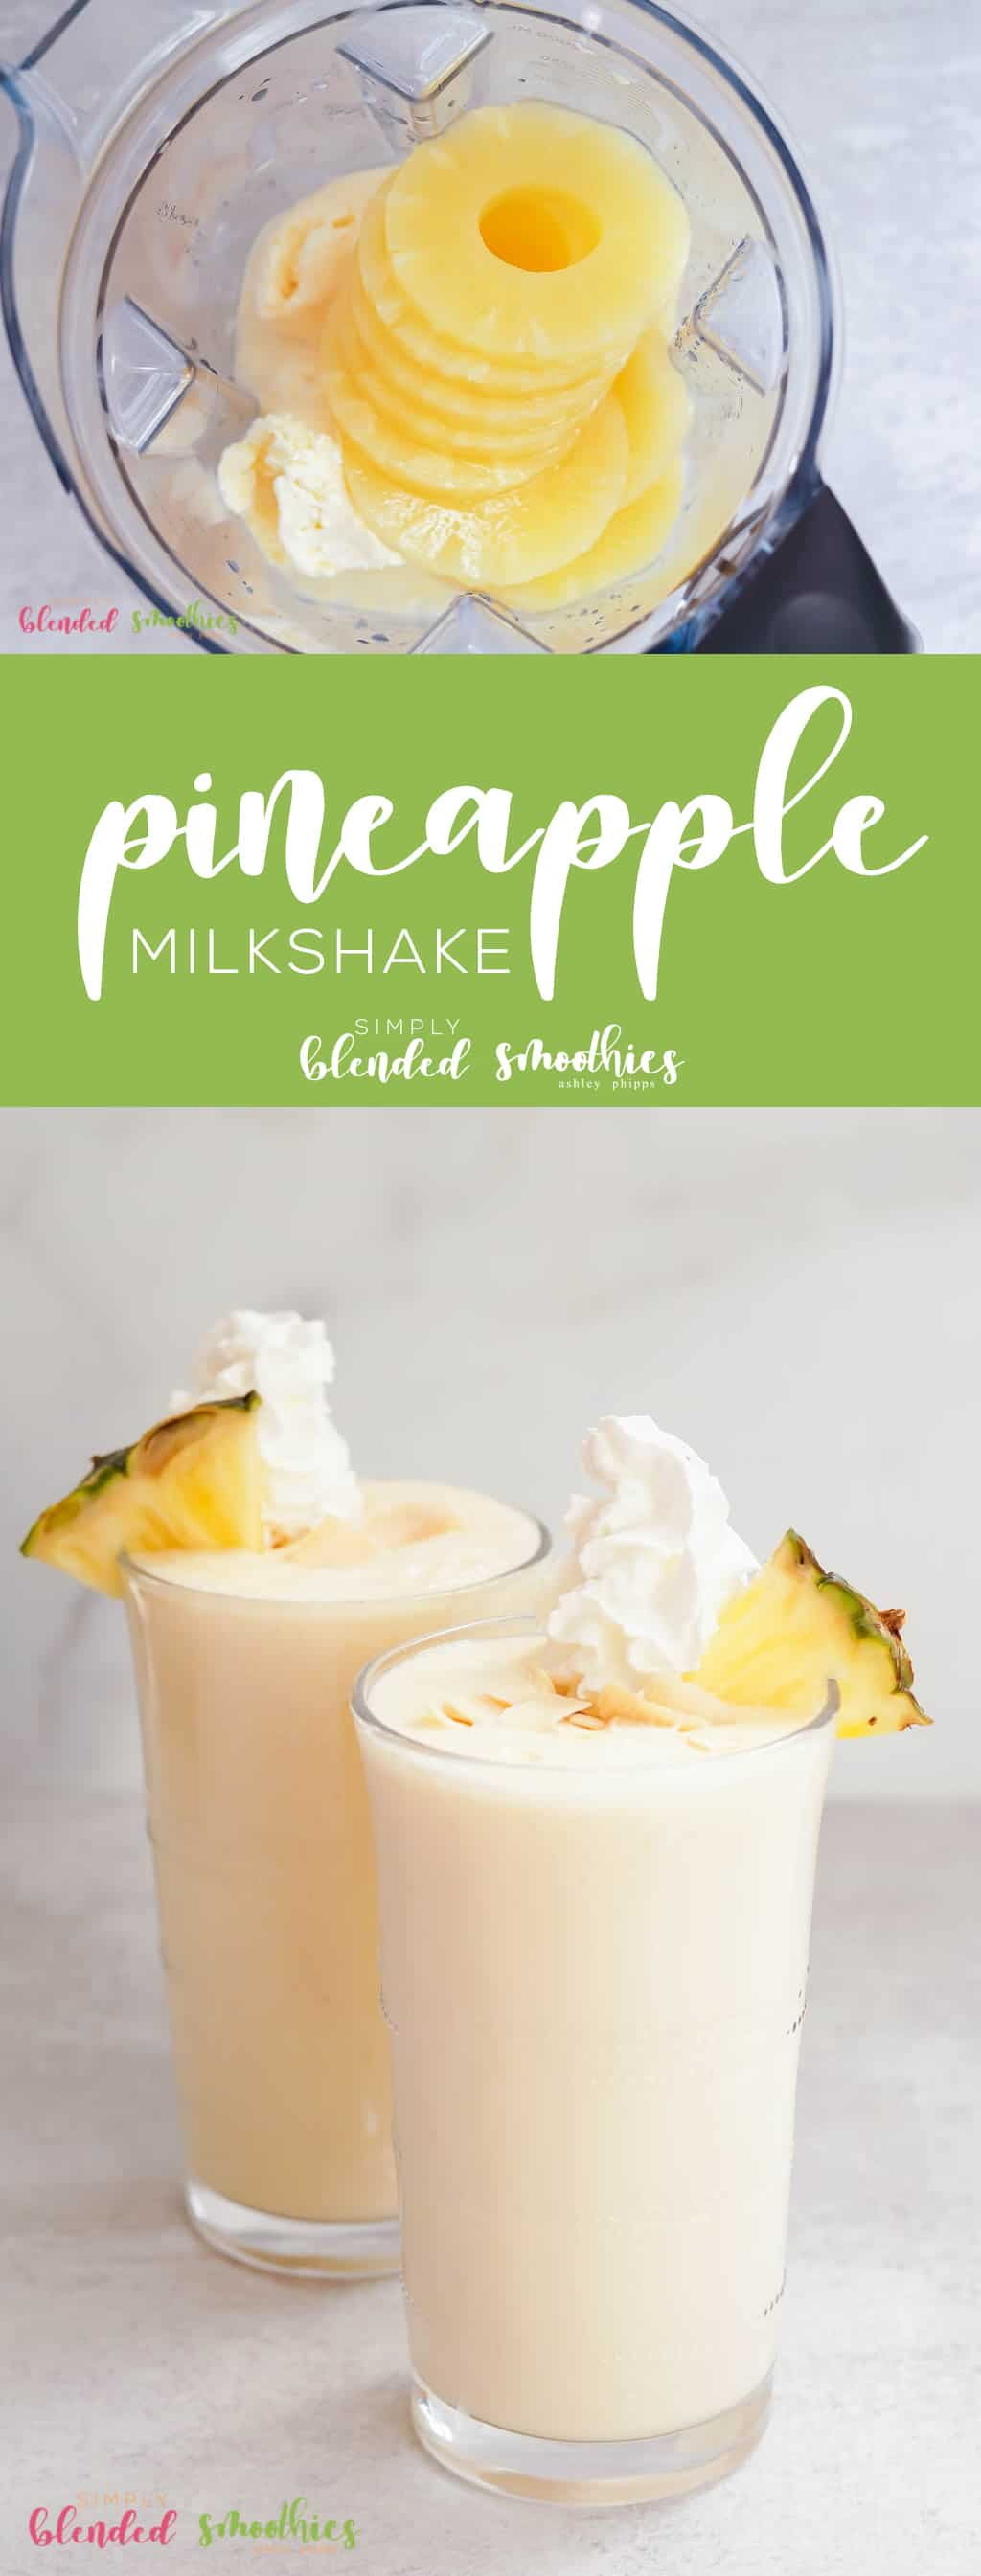 This Pineapple Milkshake is one of my familys favorite milkshake recipes because it is the perfect blend of sweet and tart thanks to a secret ingredient